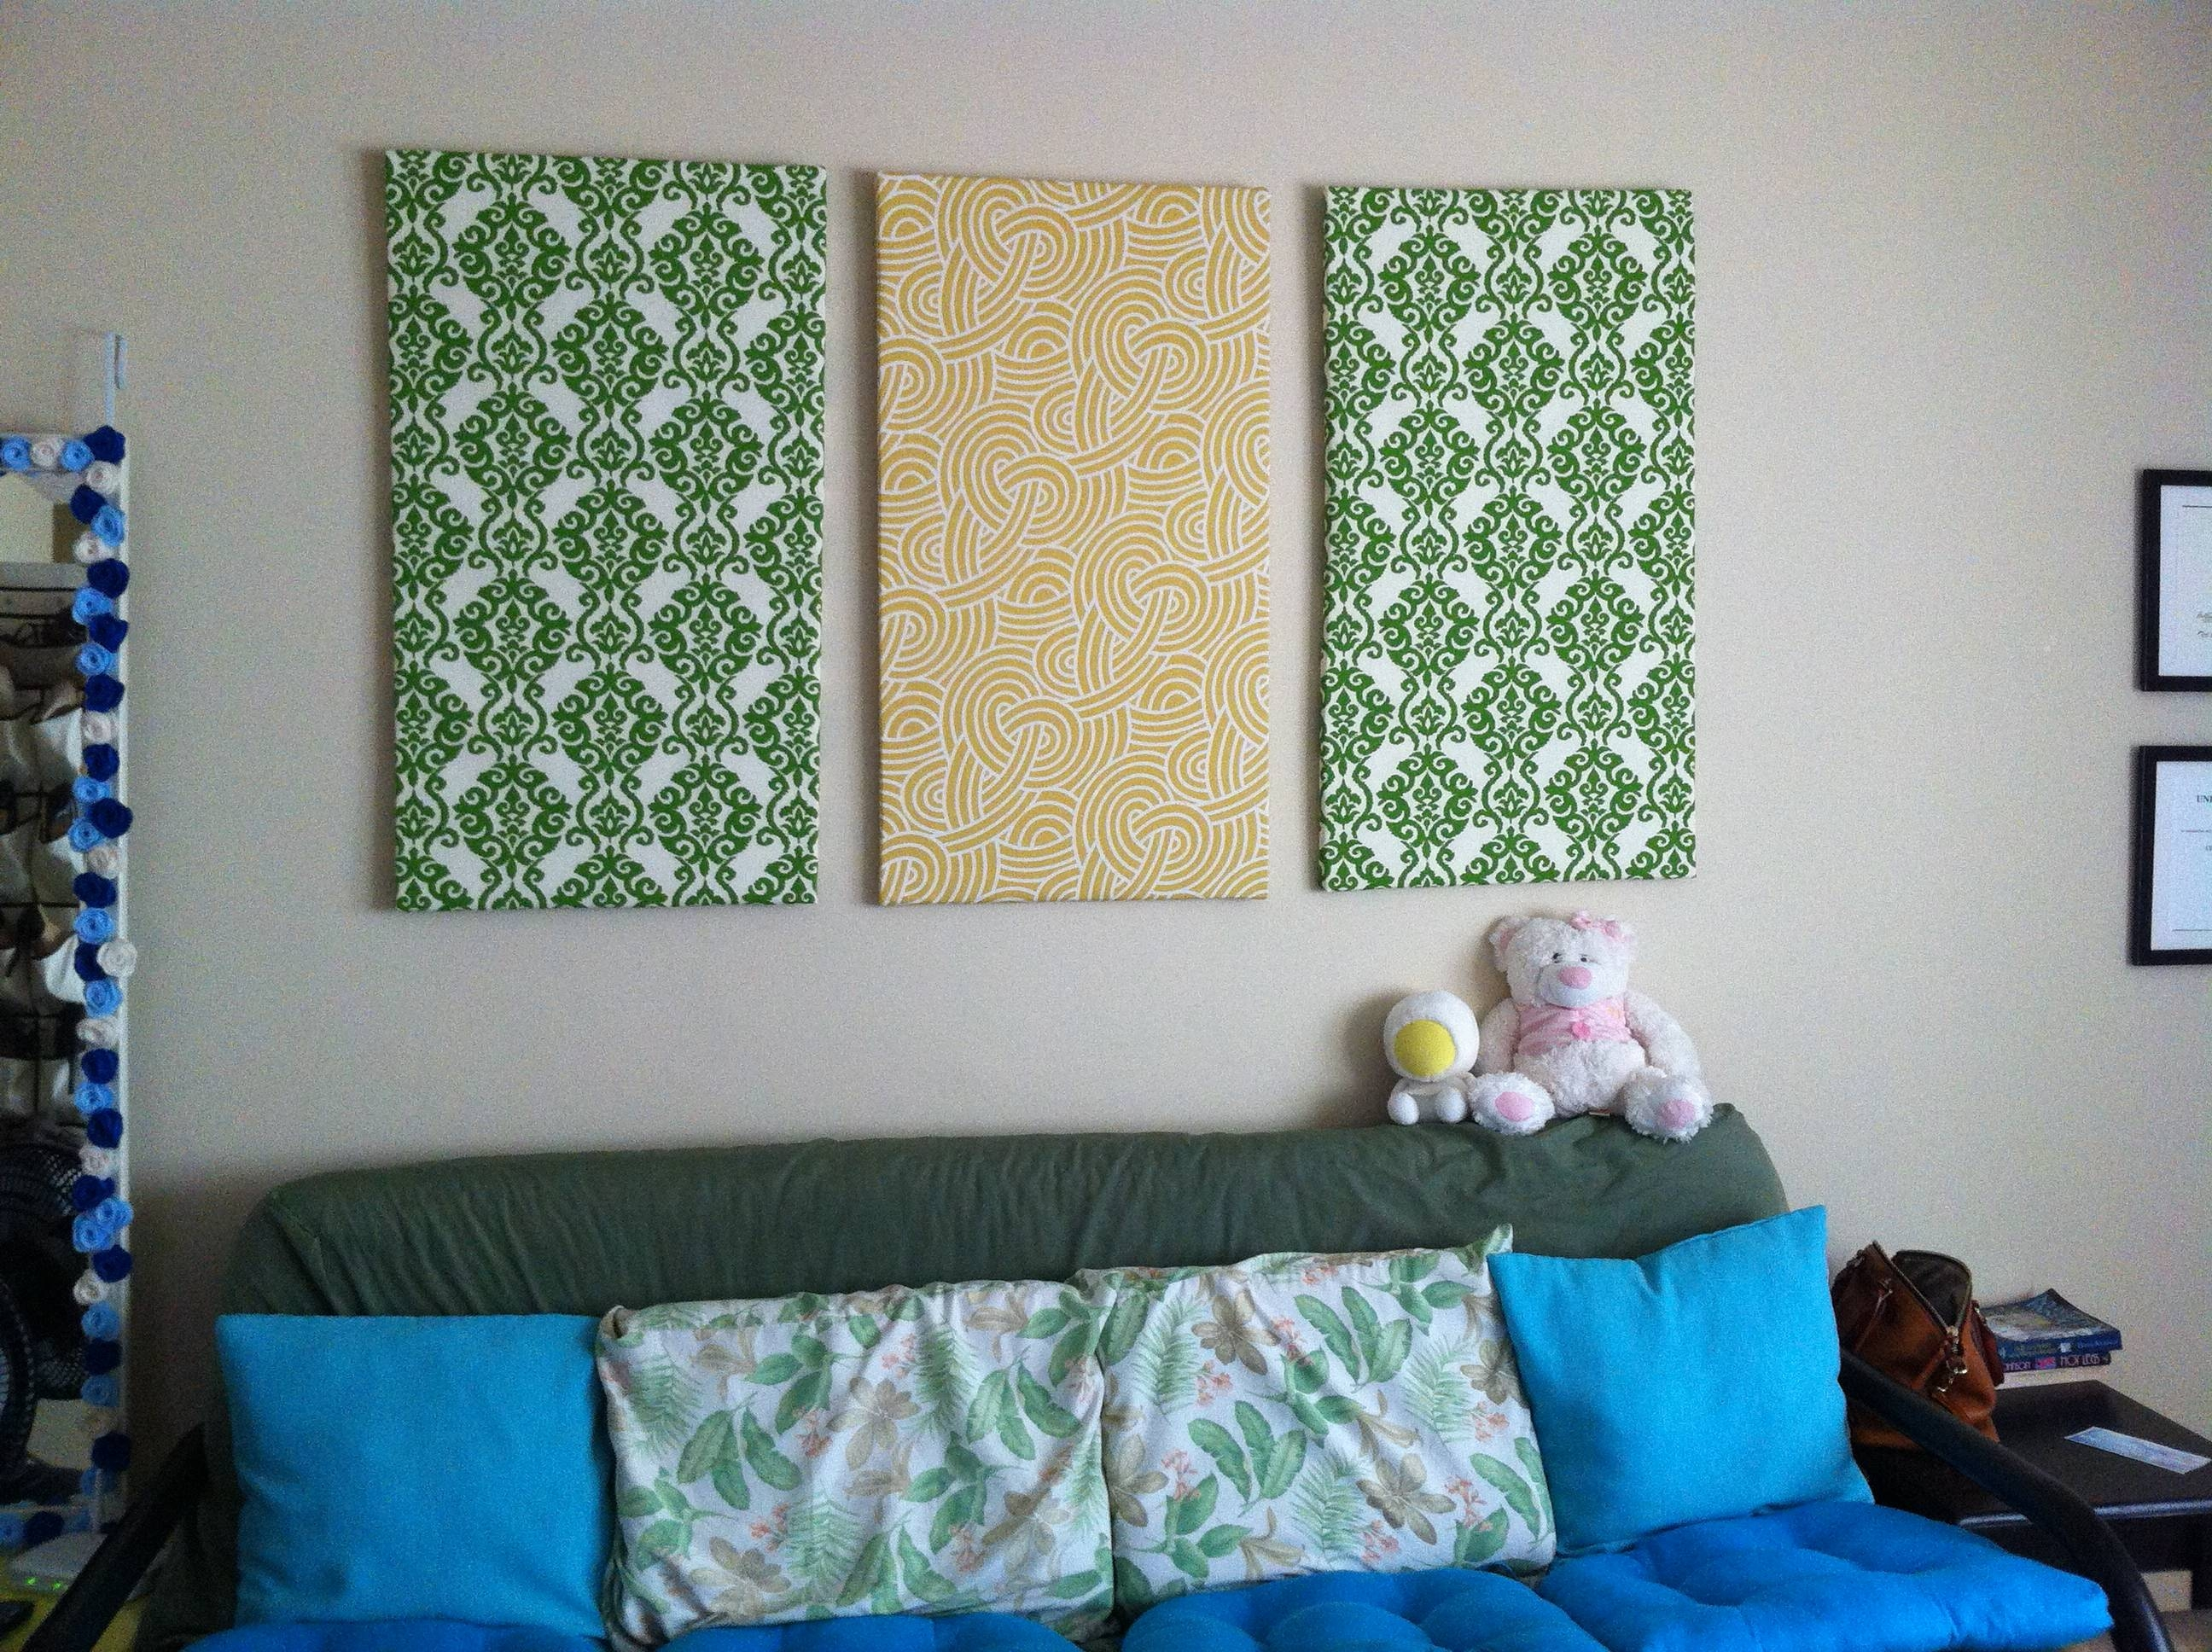 Diy Fabric Wall Art | Crafting Is Sanity With Most Recently Released Fabric Wall Art (View 4 of 20)